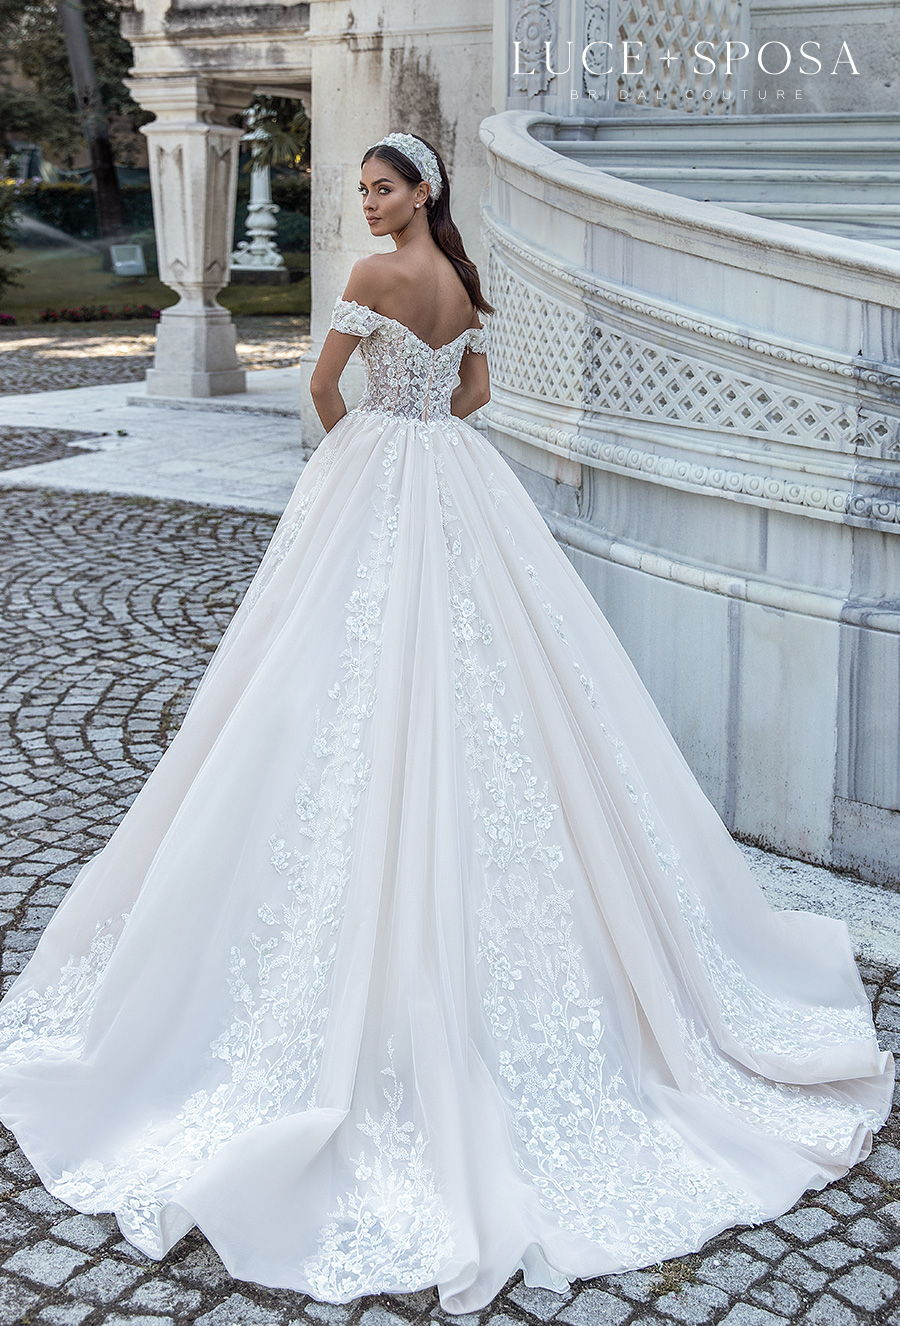 luce sposa s2021 istanbul bridal off the shoulder sweetheart neckline heavily embellished bodice princess ball gown a  line wedding dress mid back chapel train (lyra) bv